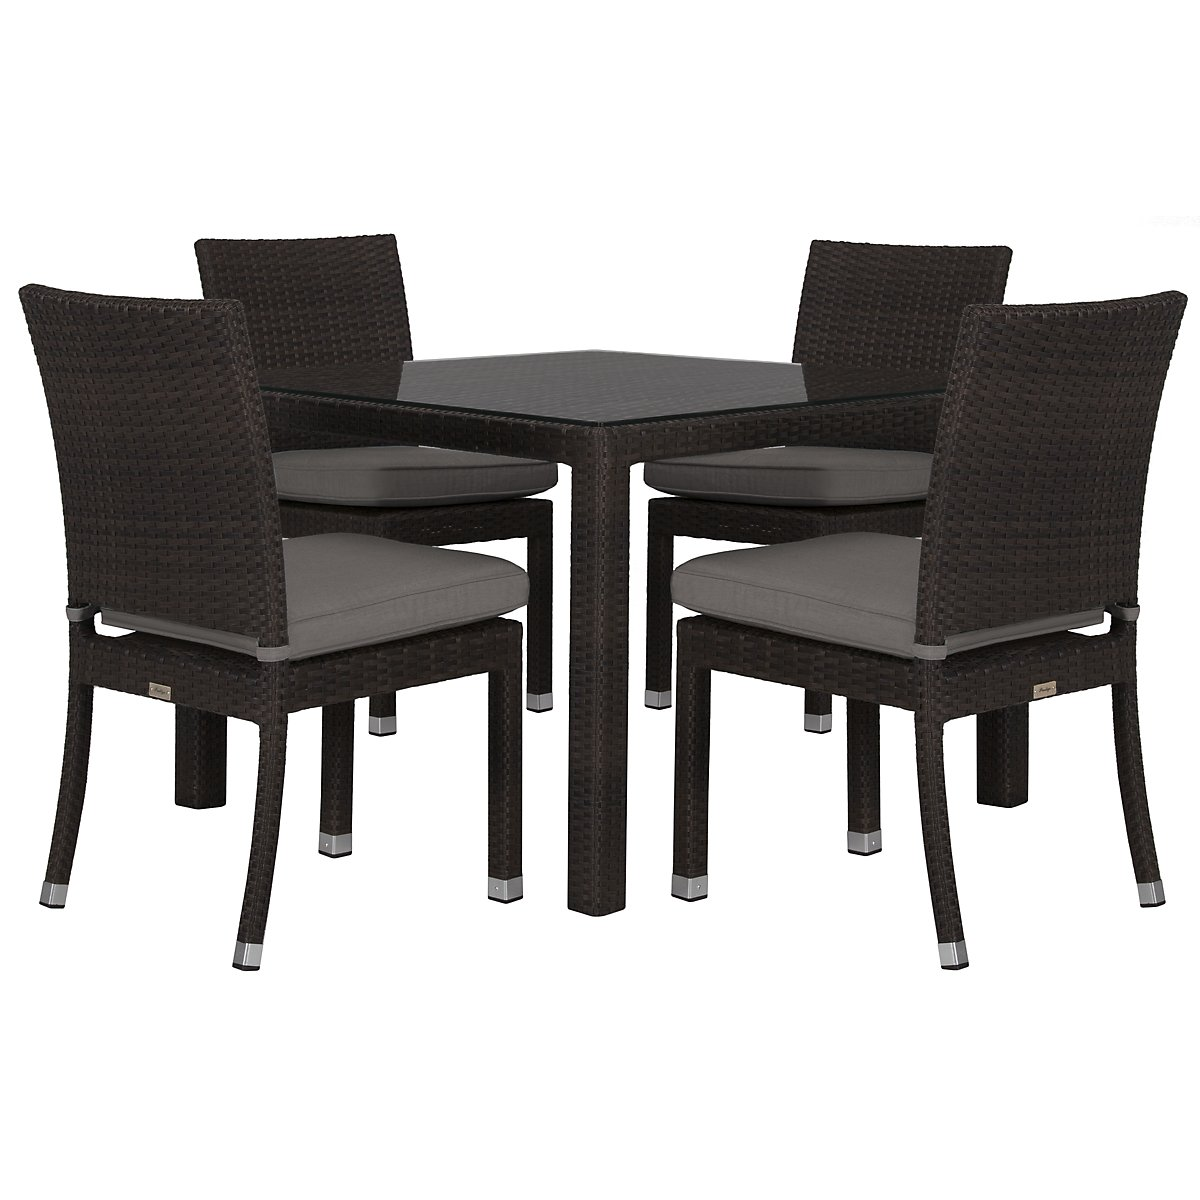 City furniture zen gray 40 square table 4 chairs zen gray 40 square table 4 chairs watchthetrailerfo